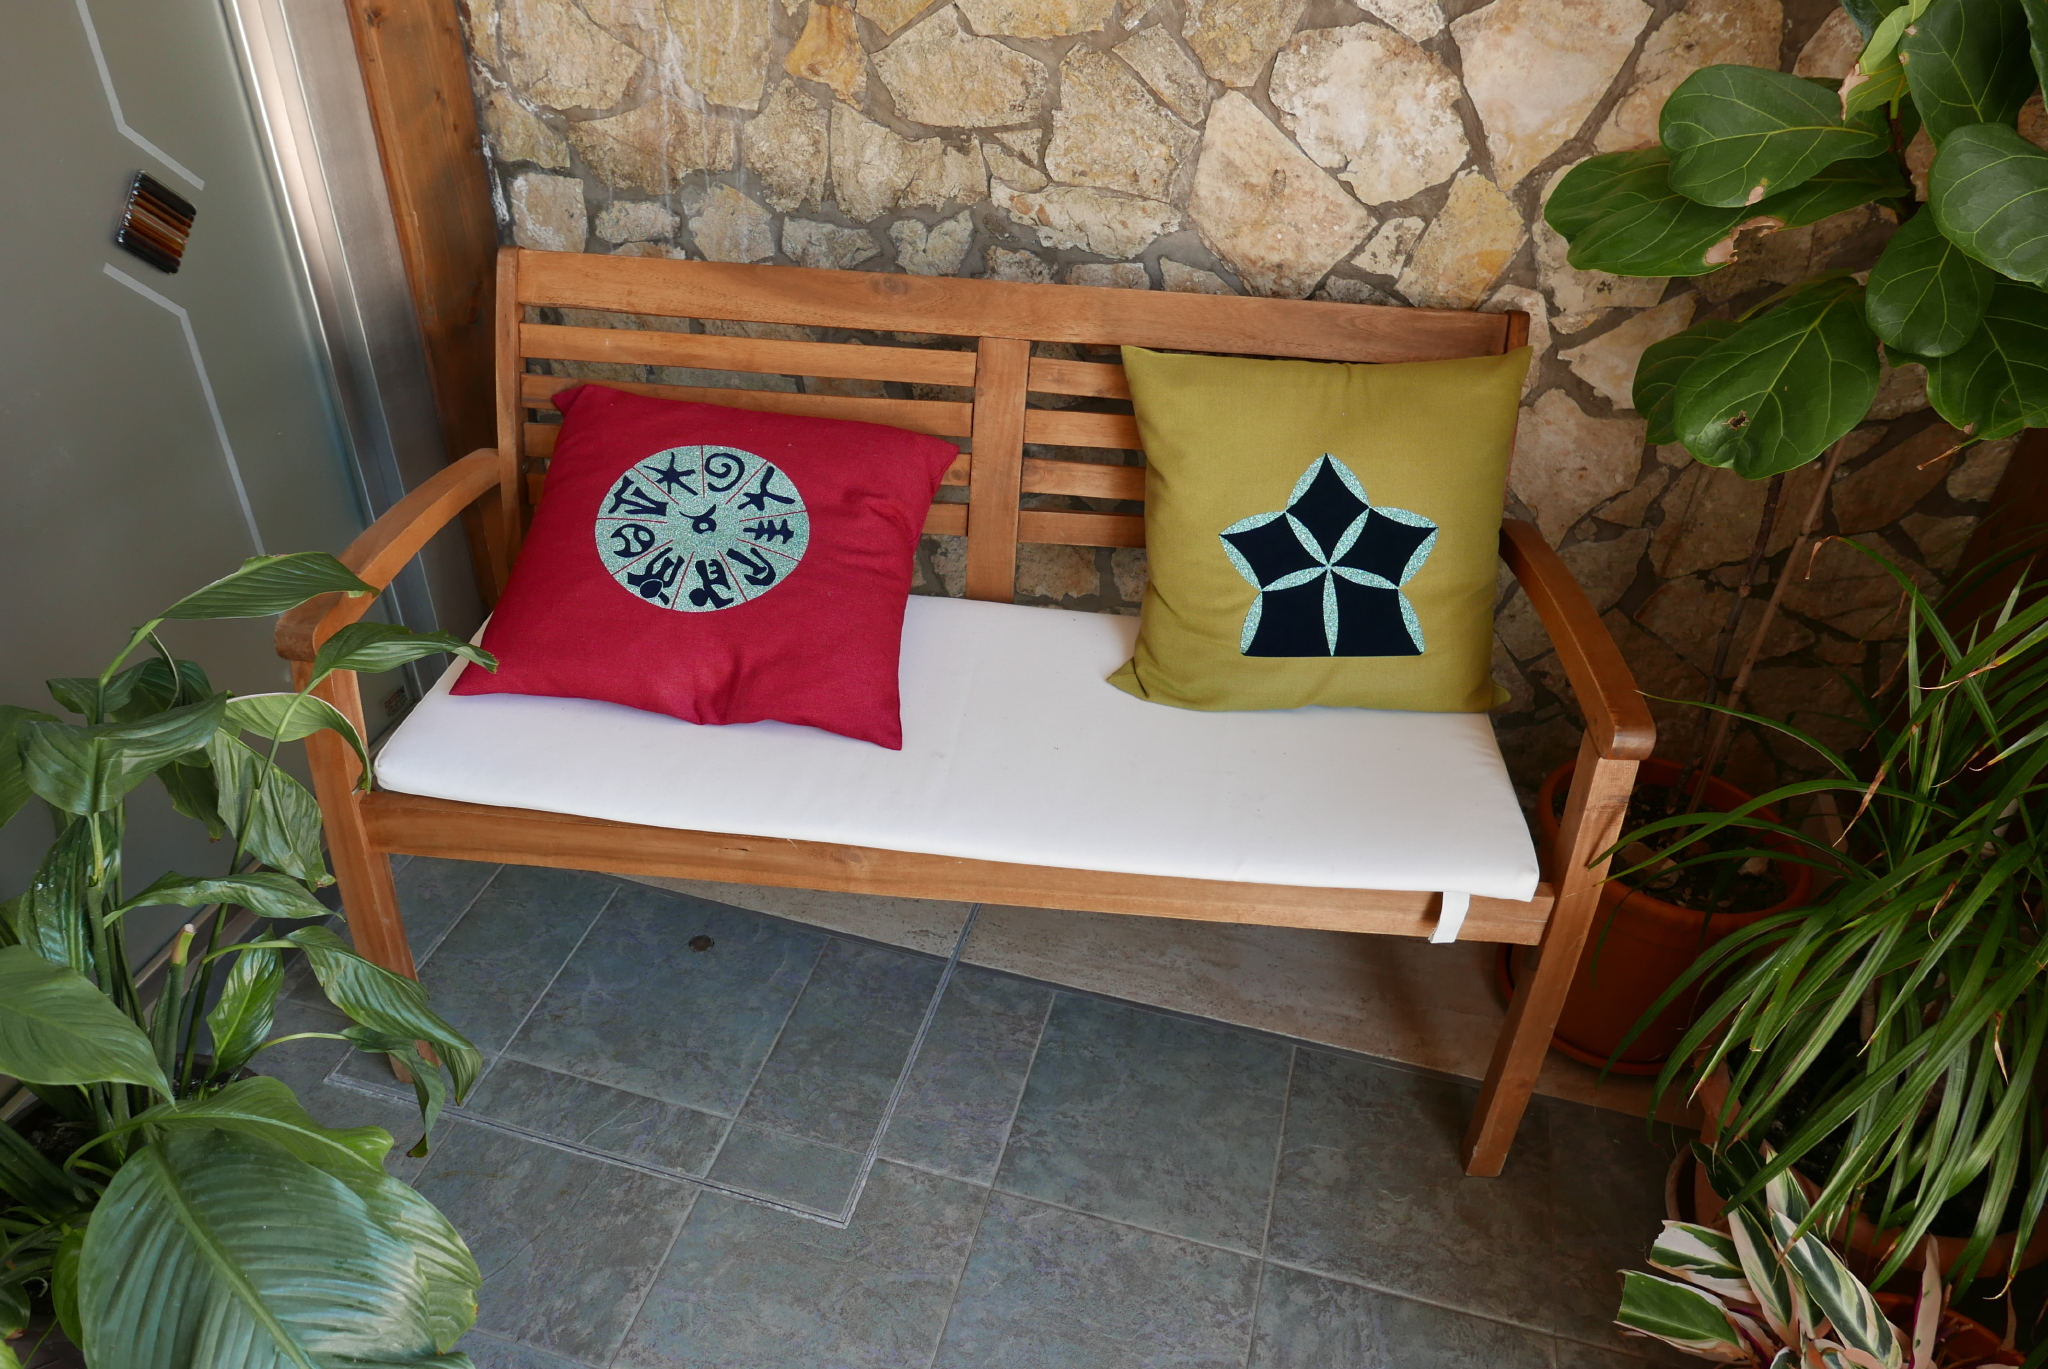 Pillows, Gibellina Nuova, 2018